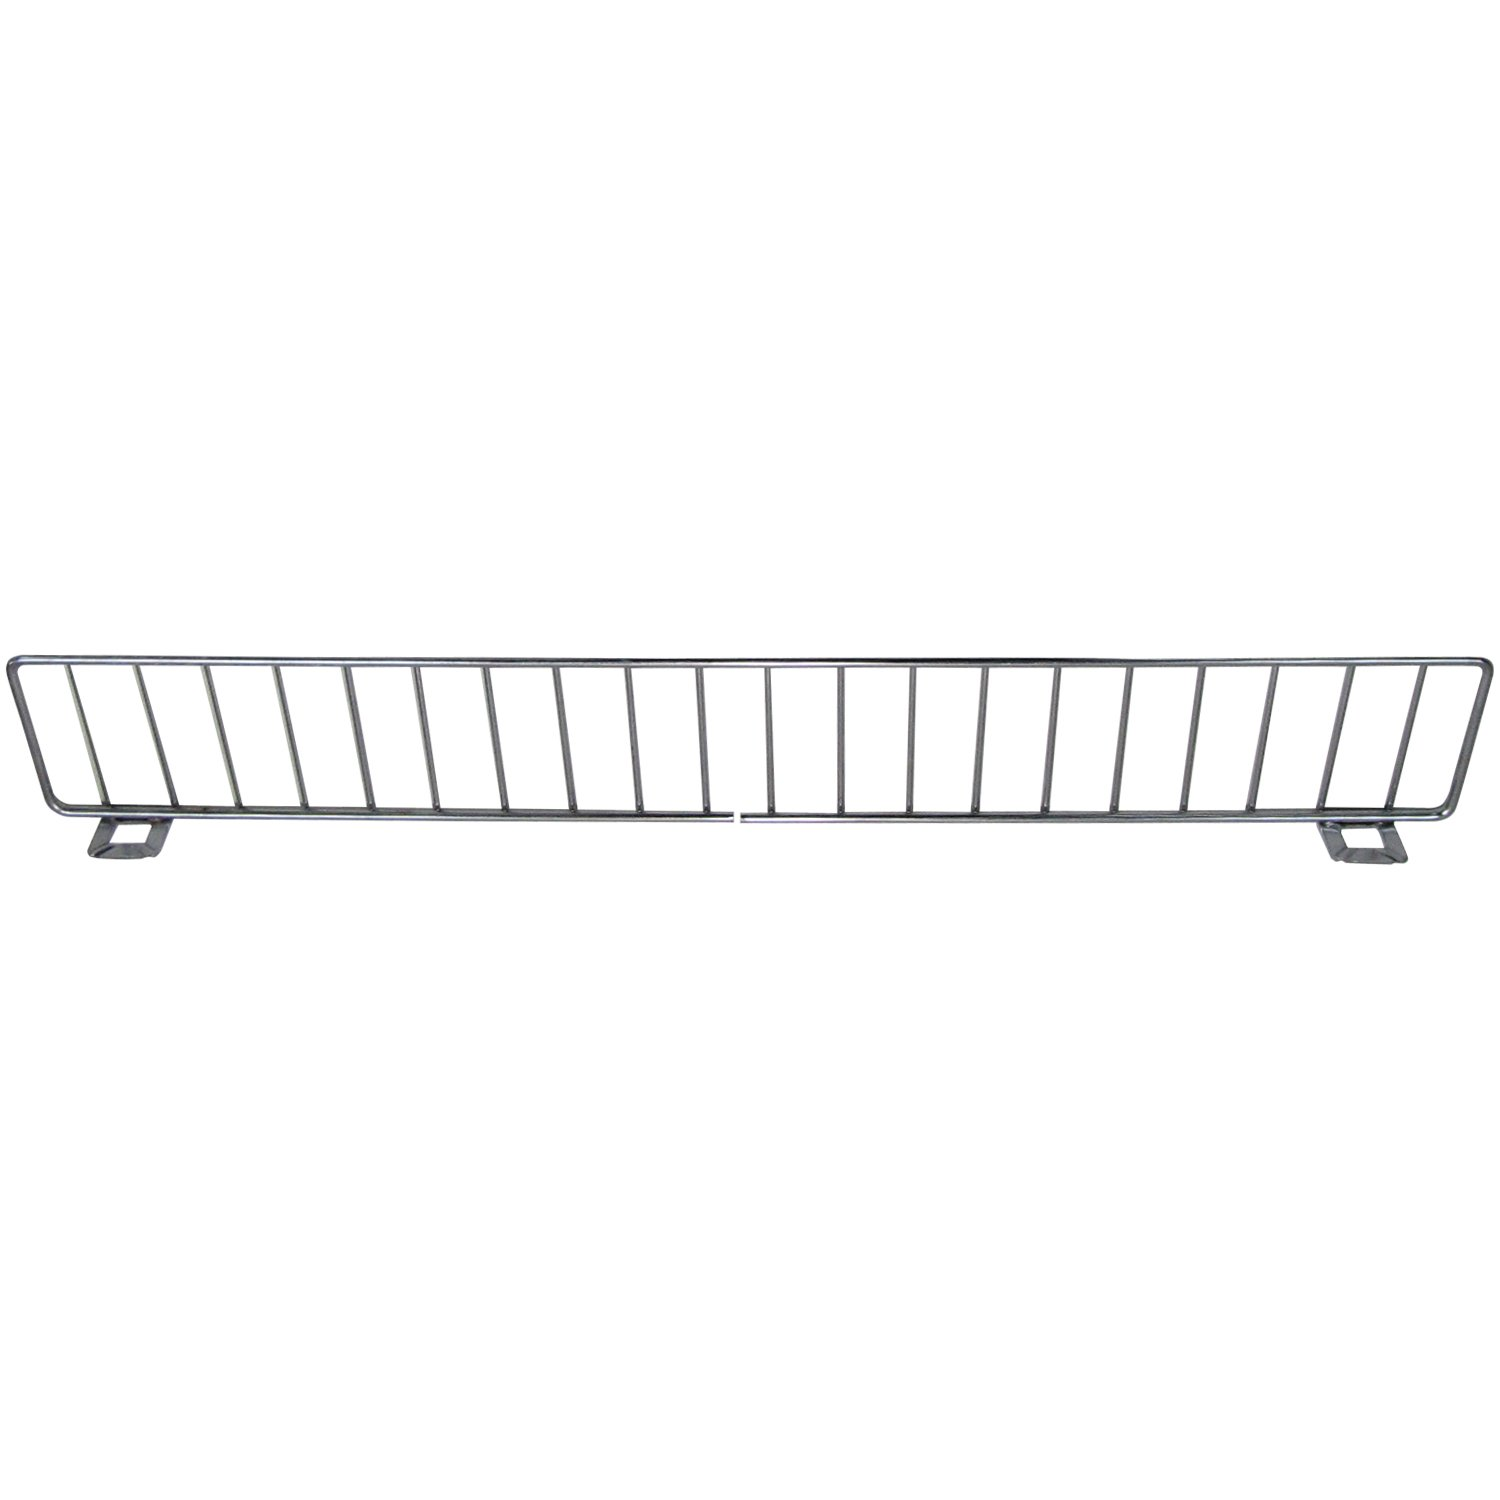 AWP CA-FD321CN-2 Chrome Divider Streater, 3 x 21 Size, Chrome, (Pack of 50)